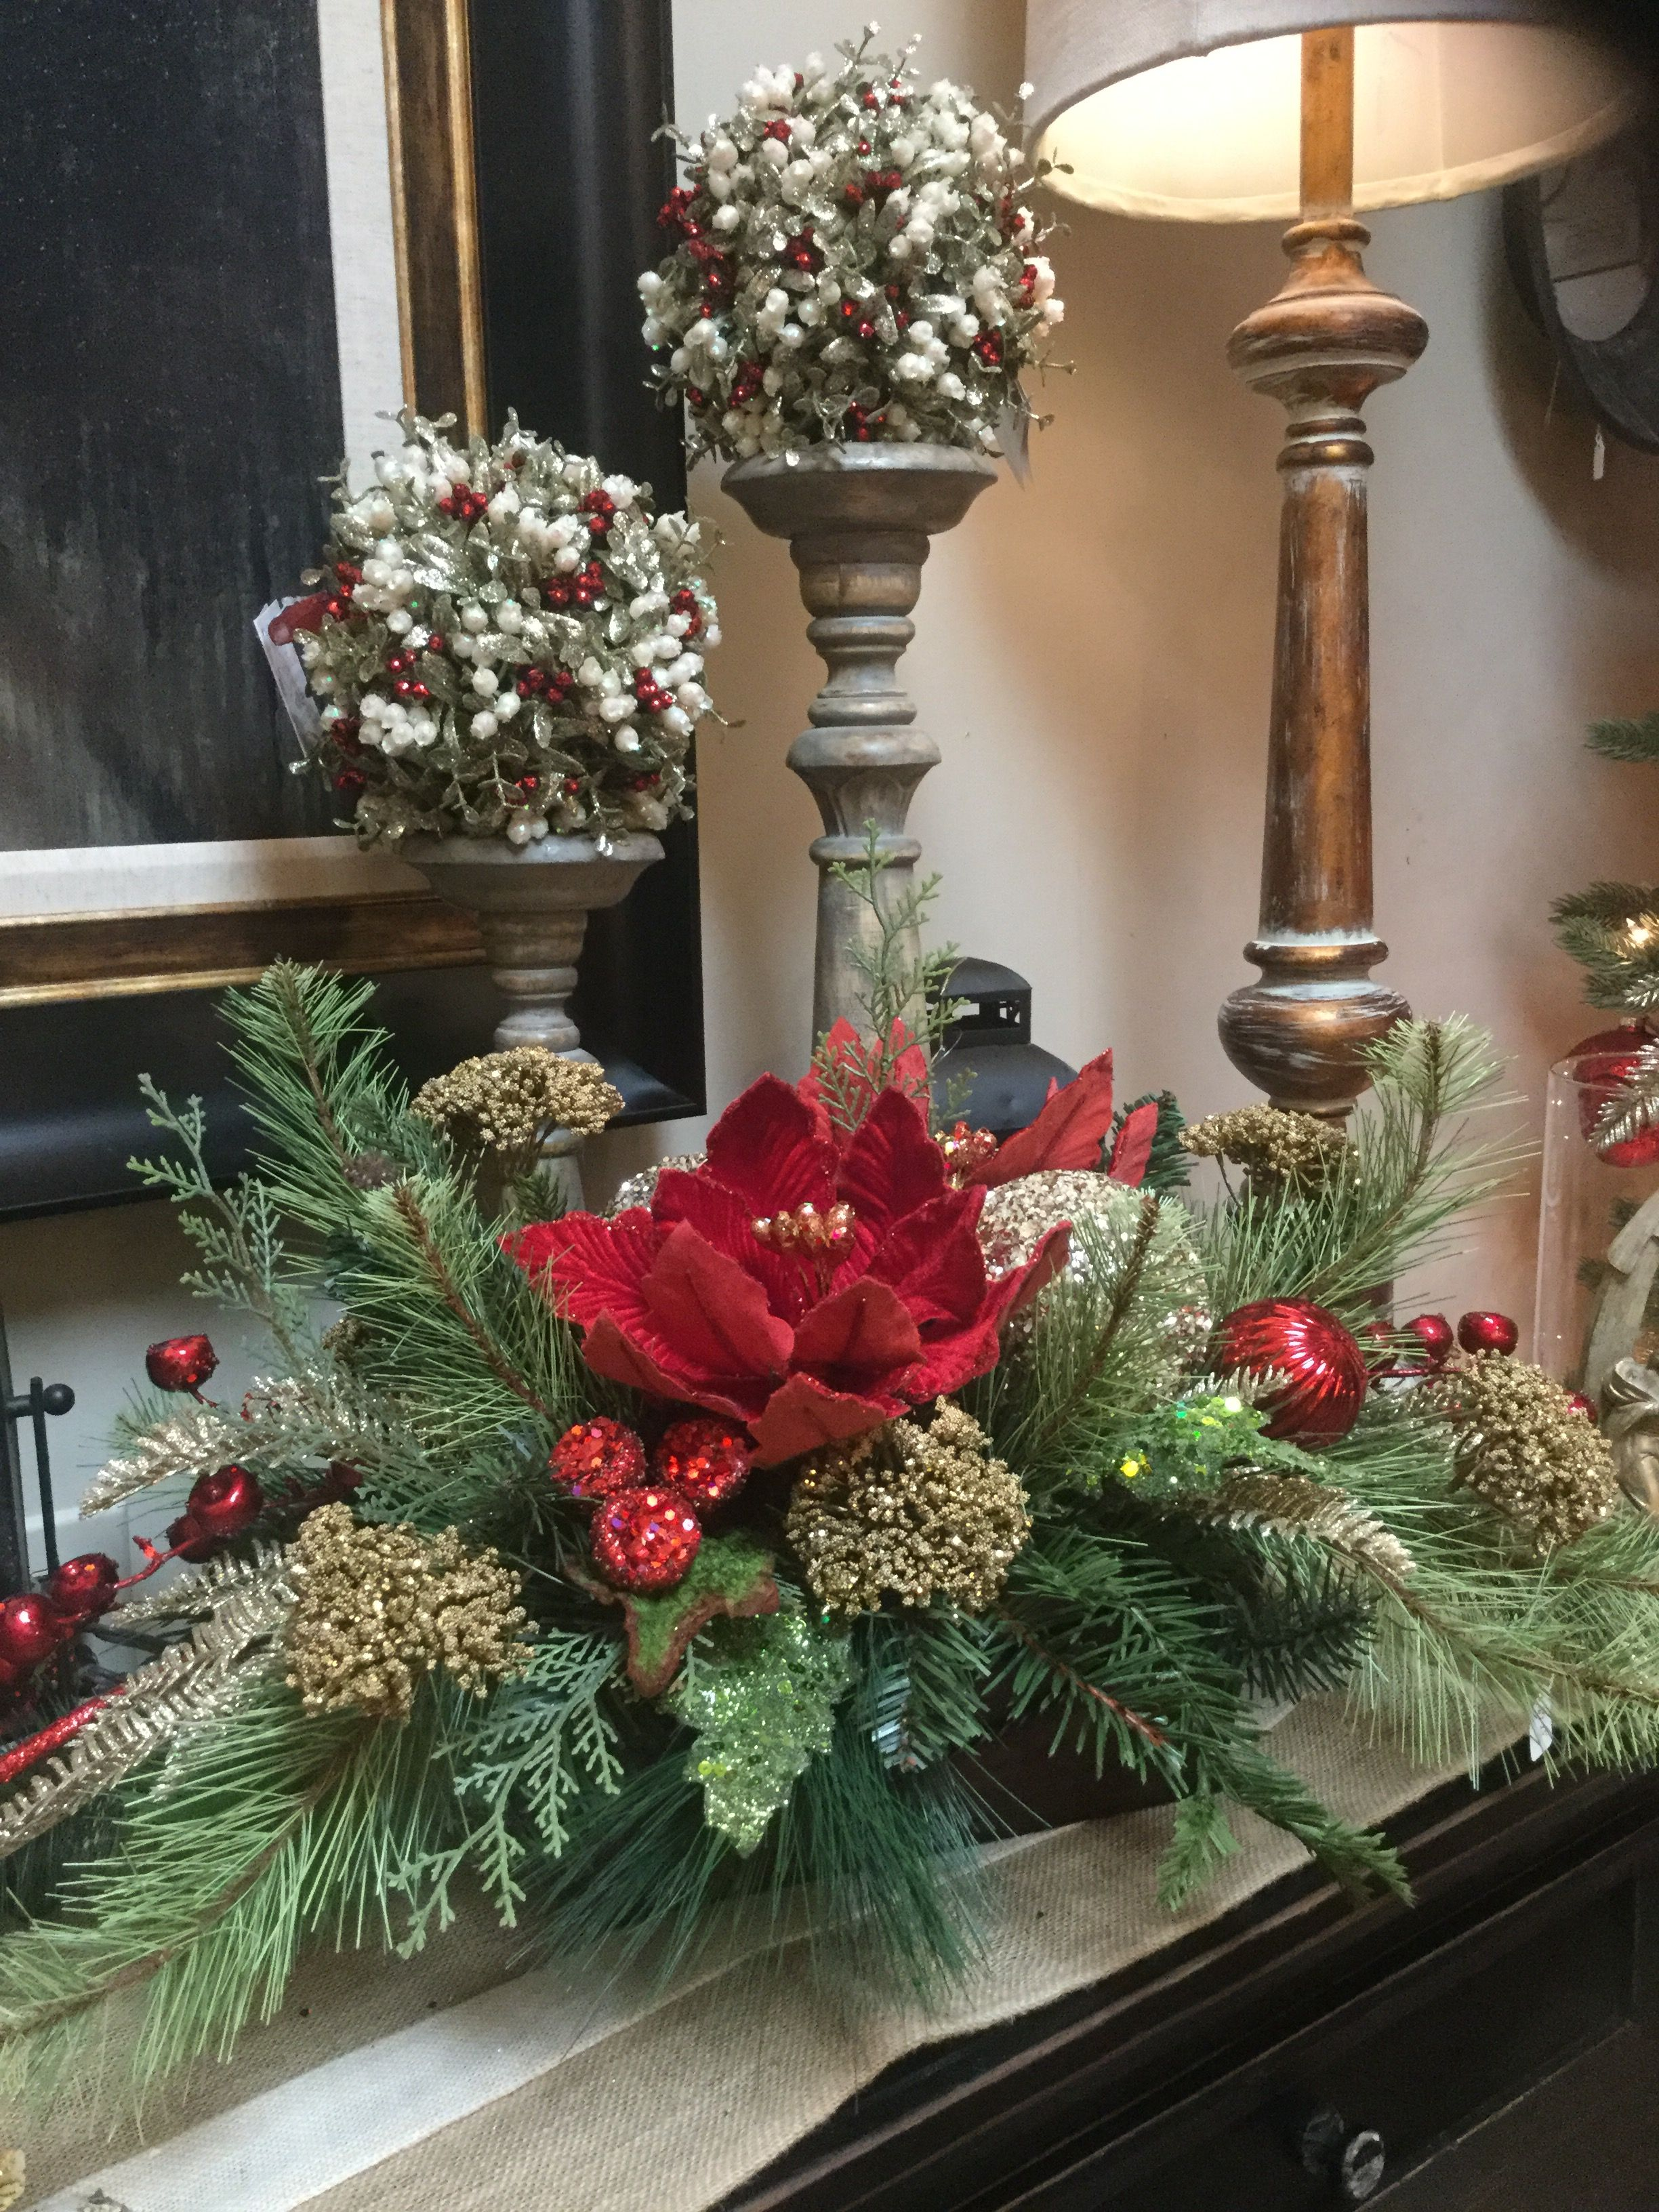 Christmas floral arrangement and decorating ideas